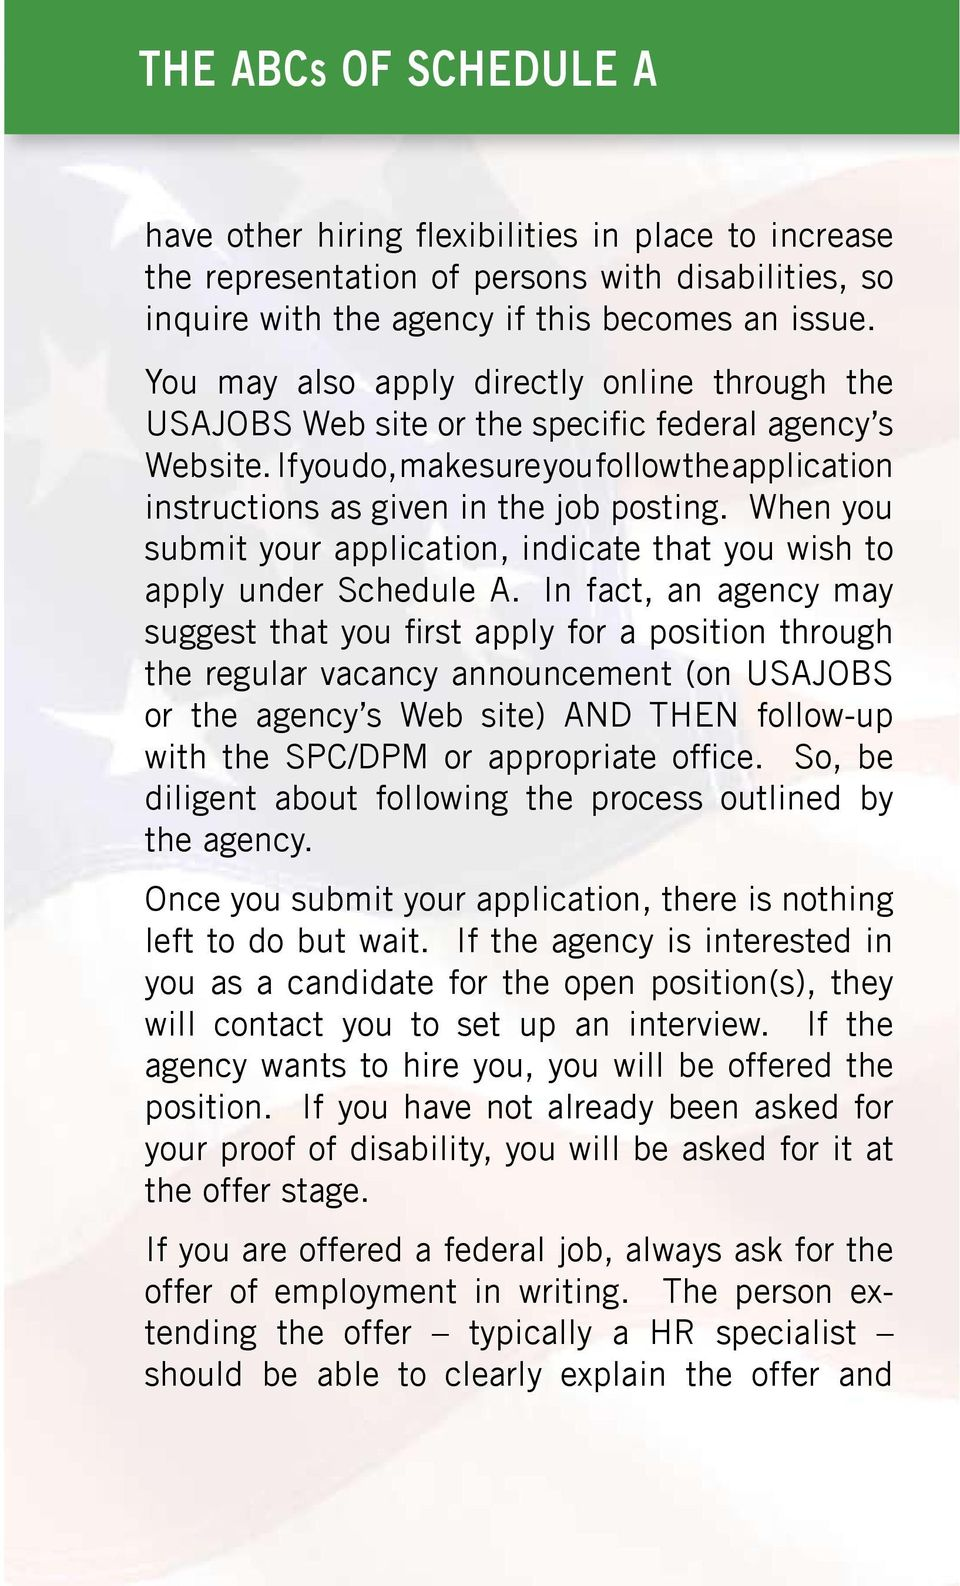 When you submit your application, indicate that you wish to apply under Schedule A.